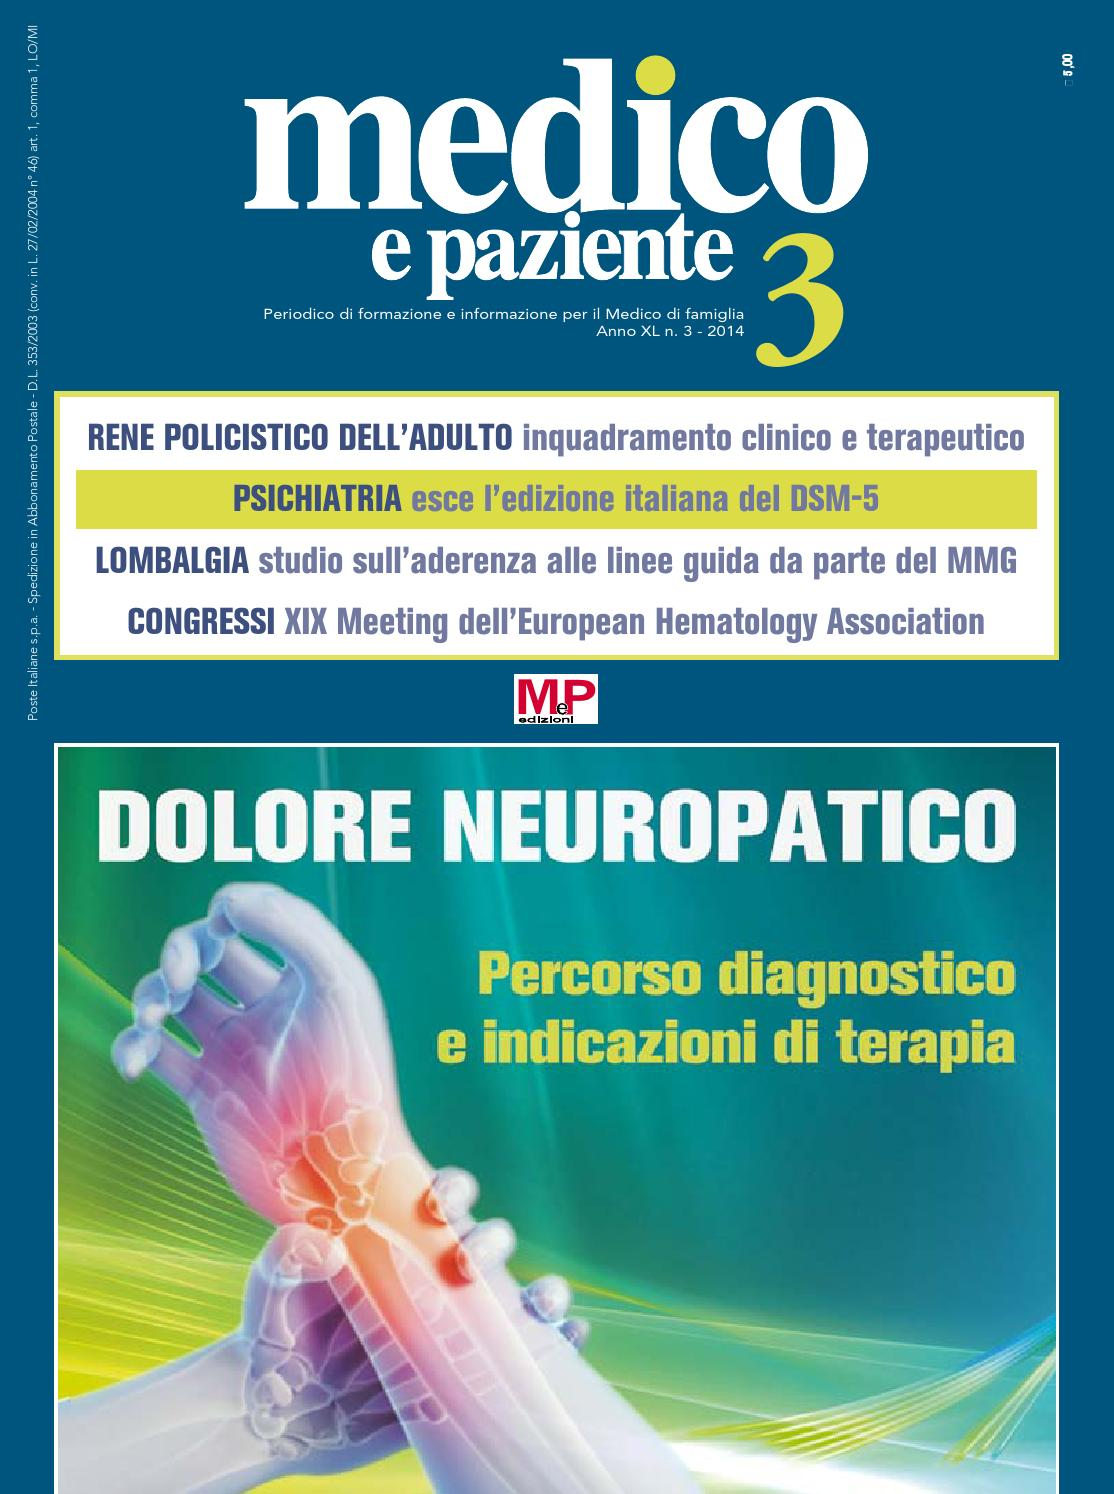 nefrectomia parziale complicanze diabetes